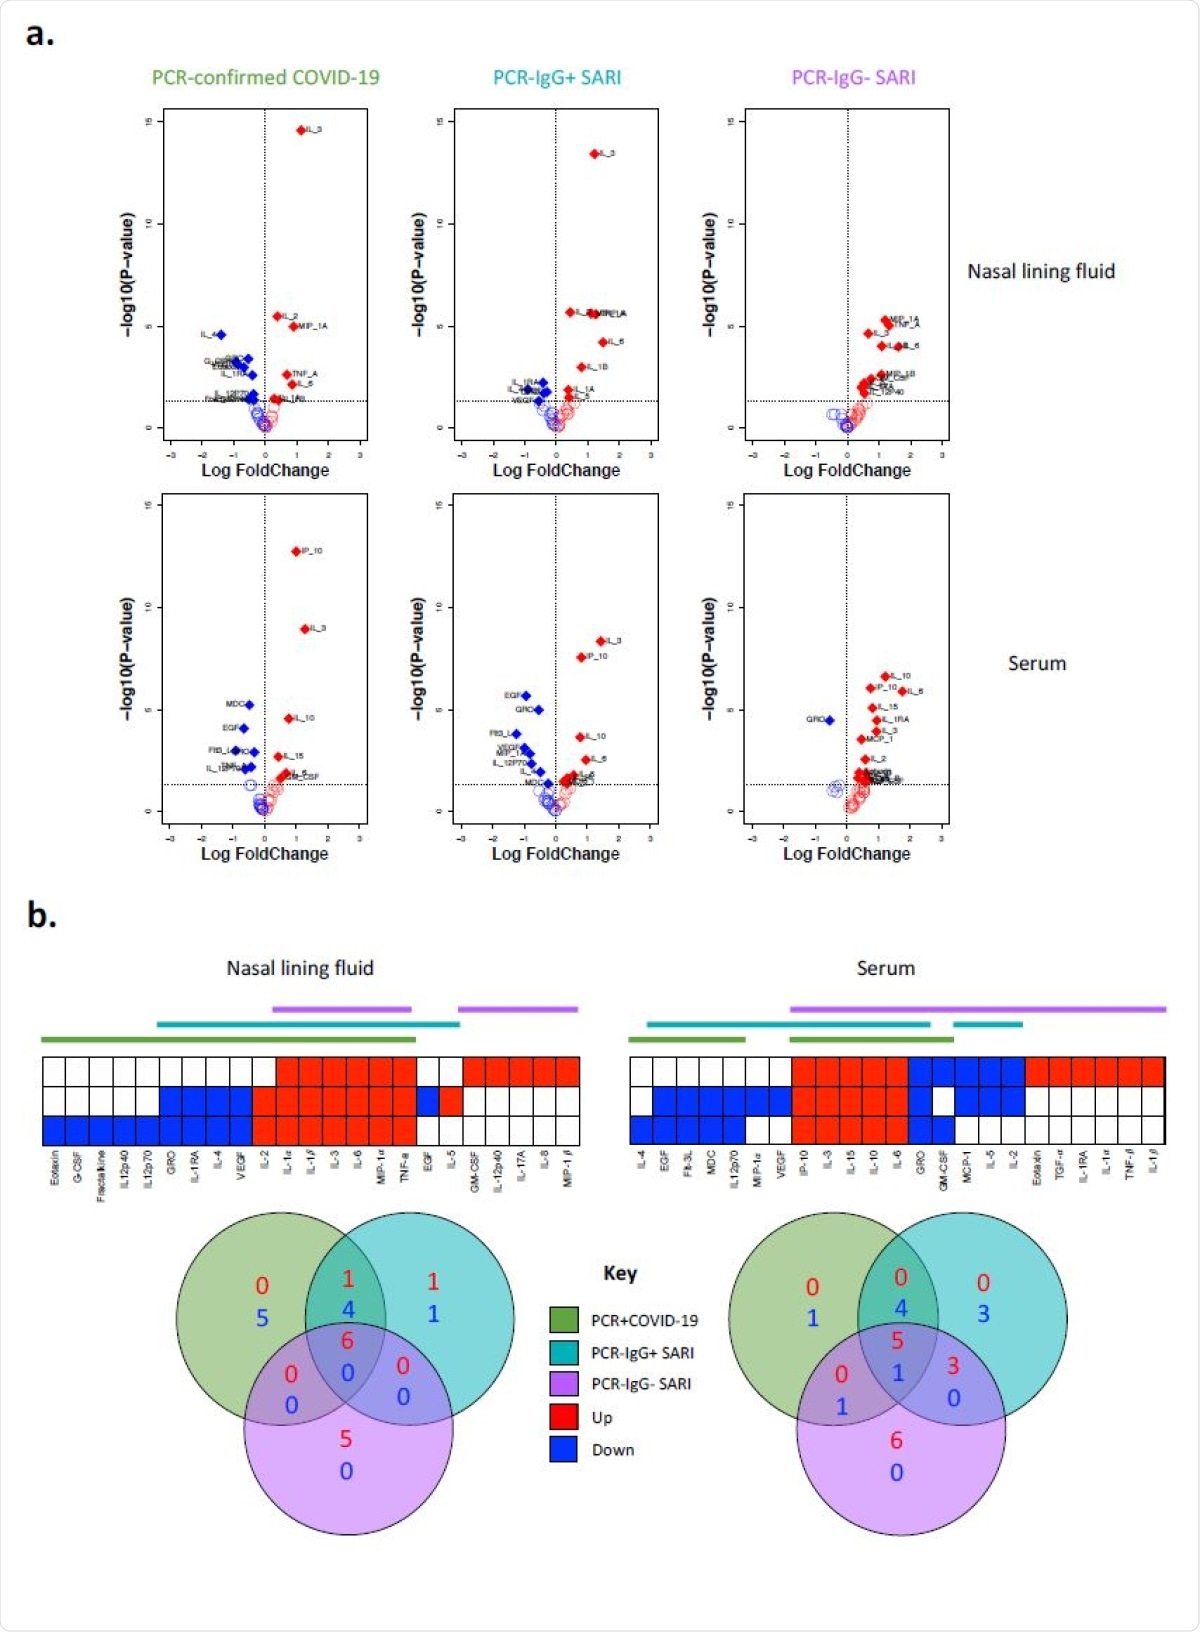 Cytokine concentrations in nasal lining fluid and serum. a) Volcano plots showing differential cytokine concentrations in nasal lining fluid and serum of PCR-confirmed COVID-19, PCR- /IgG+ SARI and PCR-/IgG- SARI patients compared to health controls. The horizontal dotted line represents a cut-off for statistical significance, while the vertical dotted line represents a cut-off point for determining whether the levels of the cytokines were higher (right, red) or lower (left, blue) compared to healthy controls. b) Venn diagrams showing similarities in cytokine concentrations among the PCR-confirmed COVID-19 (green), PCR-/IgG+ SARI (turquoise) and PCR- /IgG- SARI (purple) patients in nasal lining fluid and serum relative to healthy controls. Numbers in Venn diagrams represent the number of cytokines that were either higher (red) or lower (blue) than healthy controls common among the study groups. Data were analysed using empirical Bayes moderated t-tests (Healthy controls,